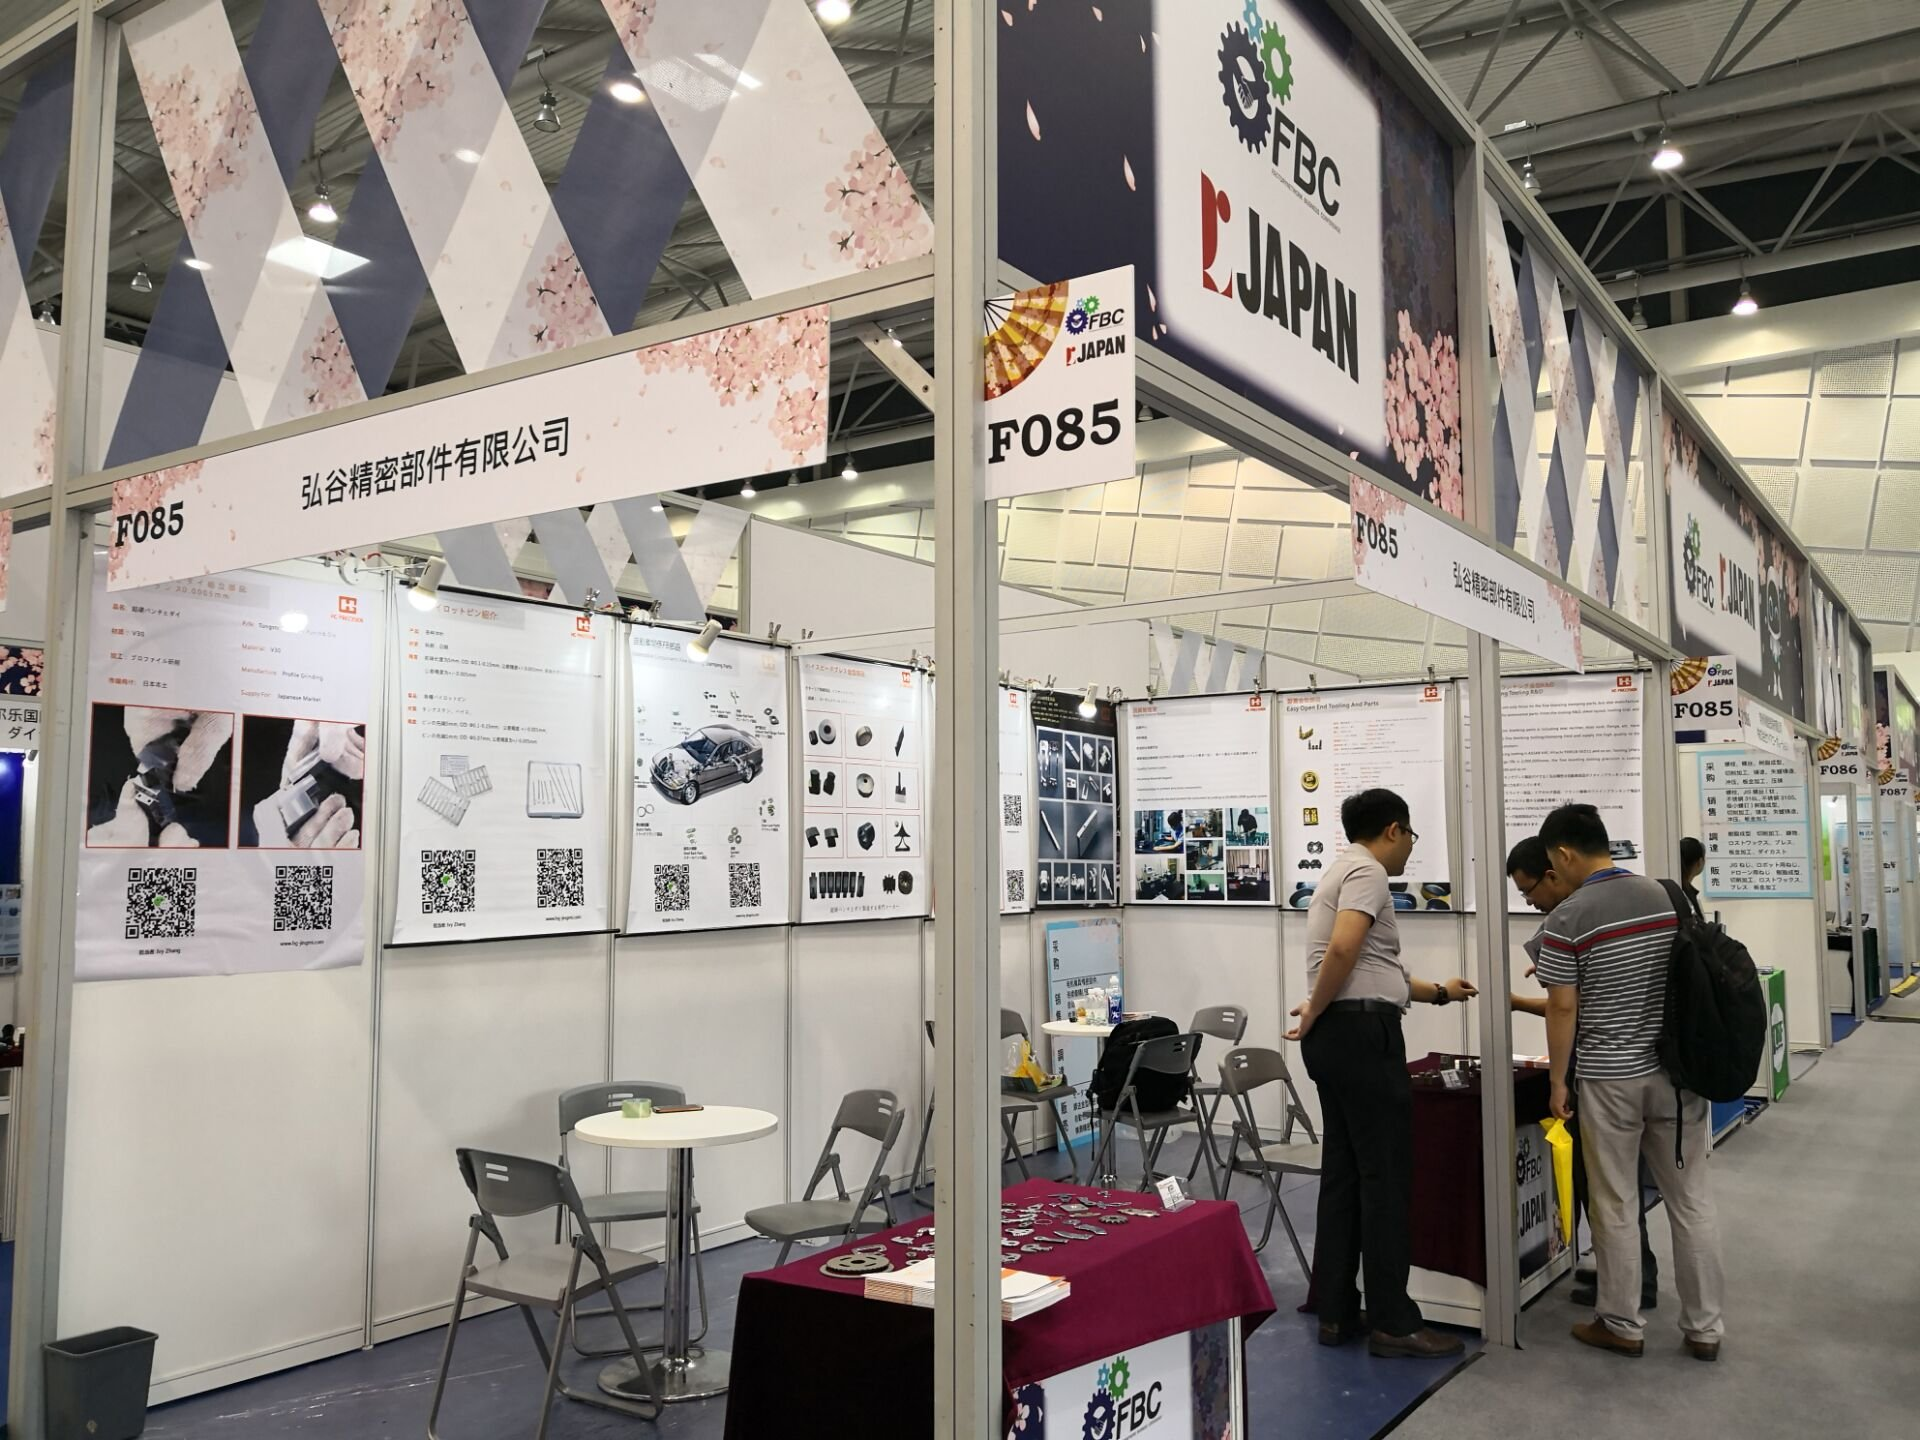 HG Precision on FBC Exhibition